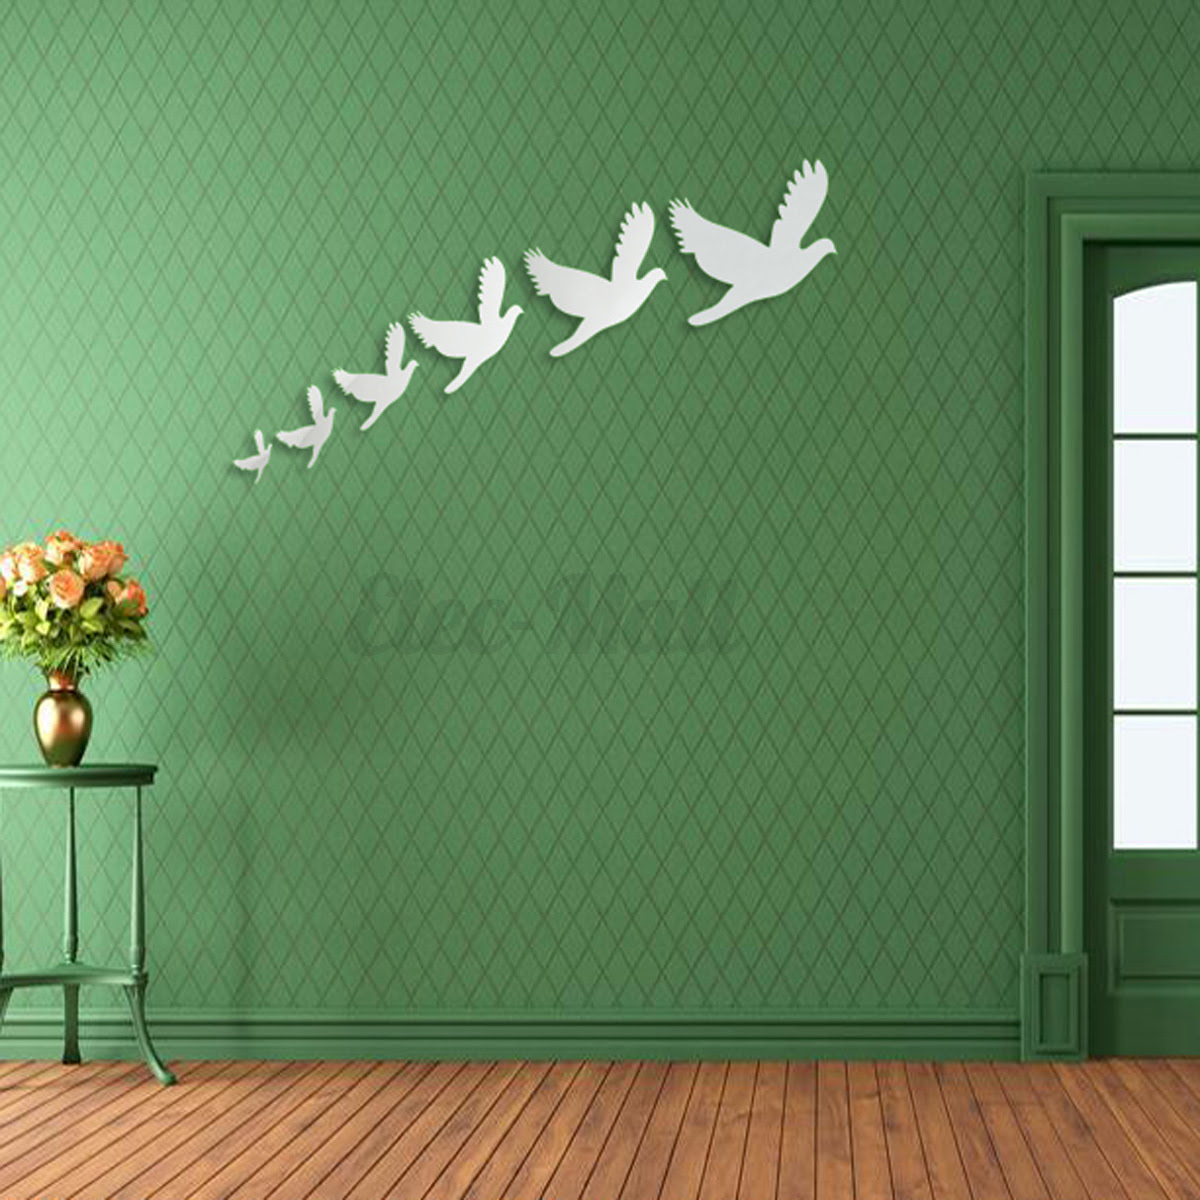 Removable DIY 3D Mirror Surface Wall Stickers Mural Art Living Room Home Decor  eBay